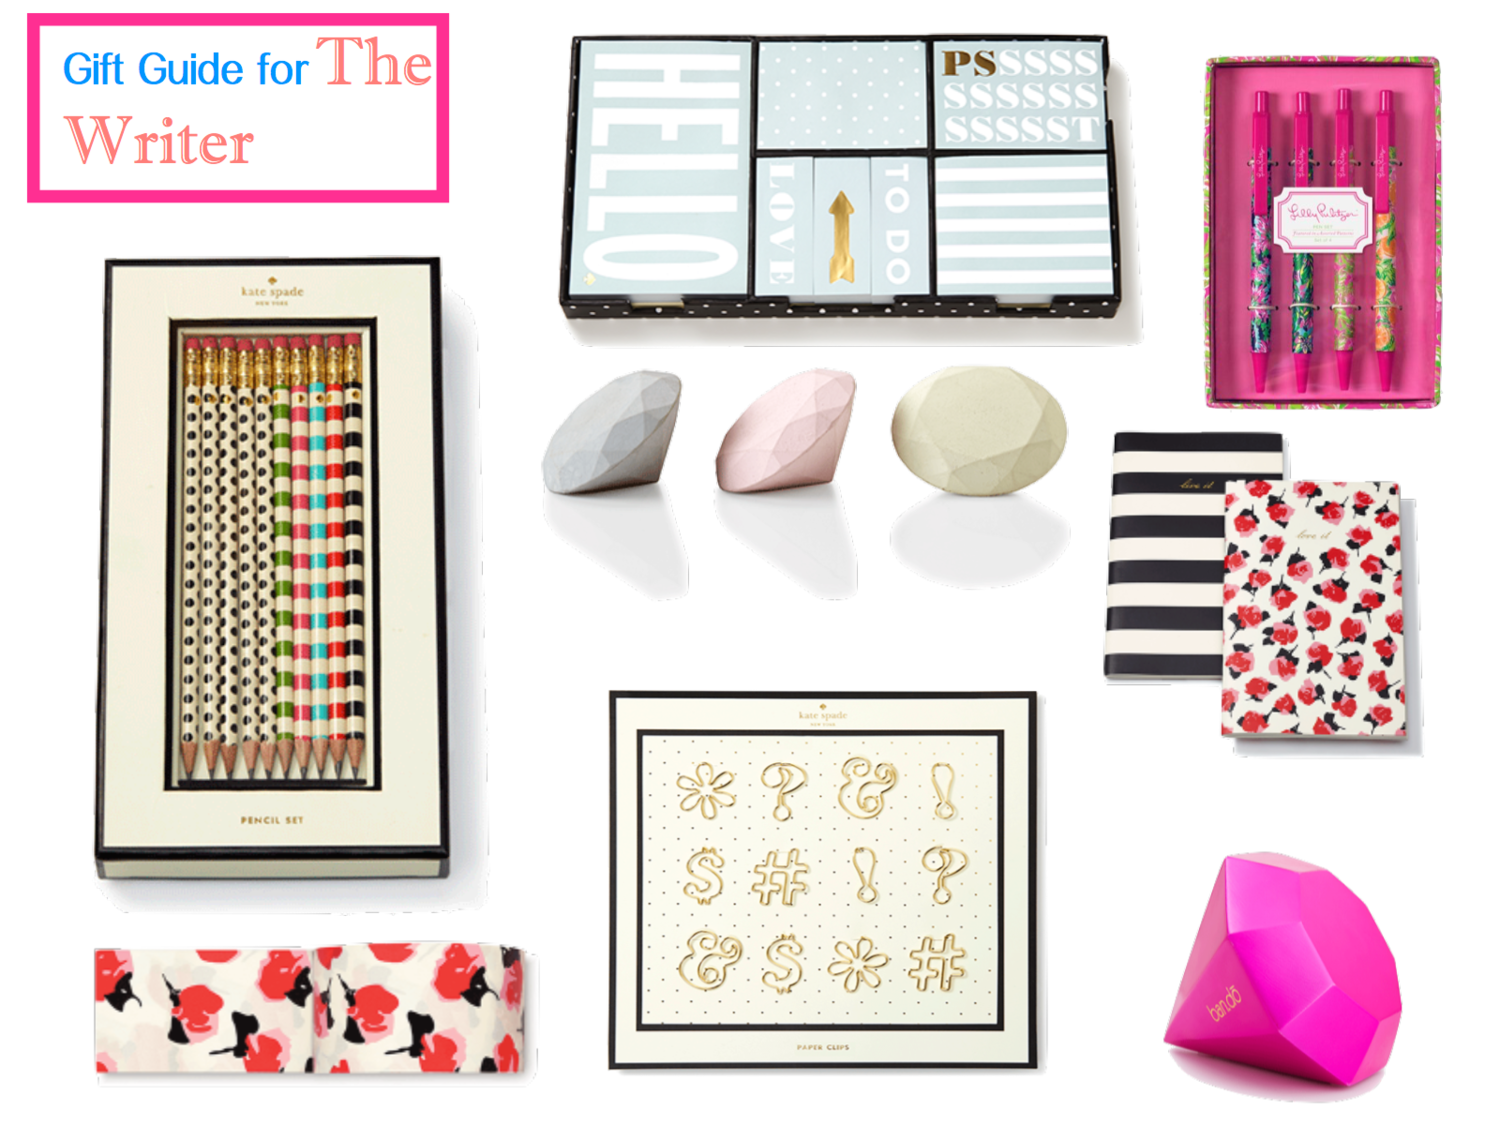 Gift Guide for The Writer   http://www.inthevalleyblog.com/inthevallley/2014/11/9/gift-guide-for-the-writer